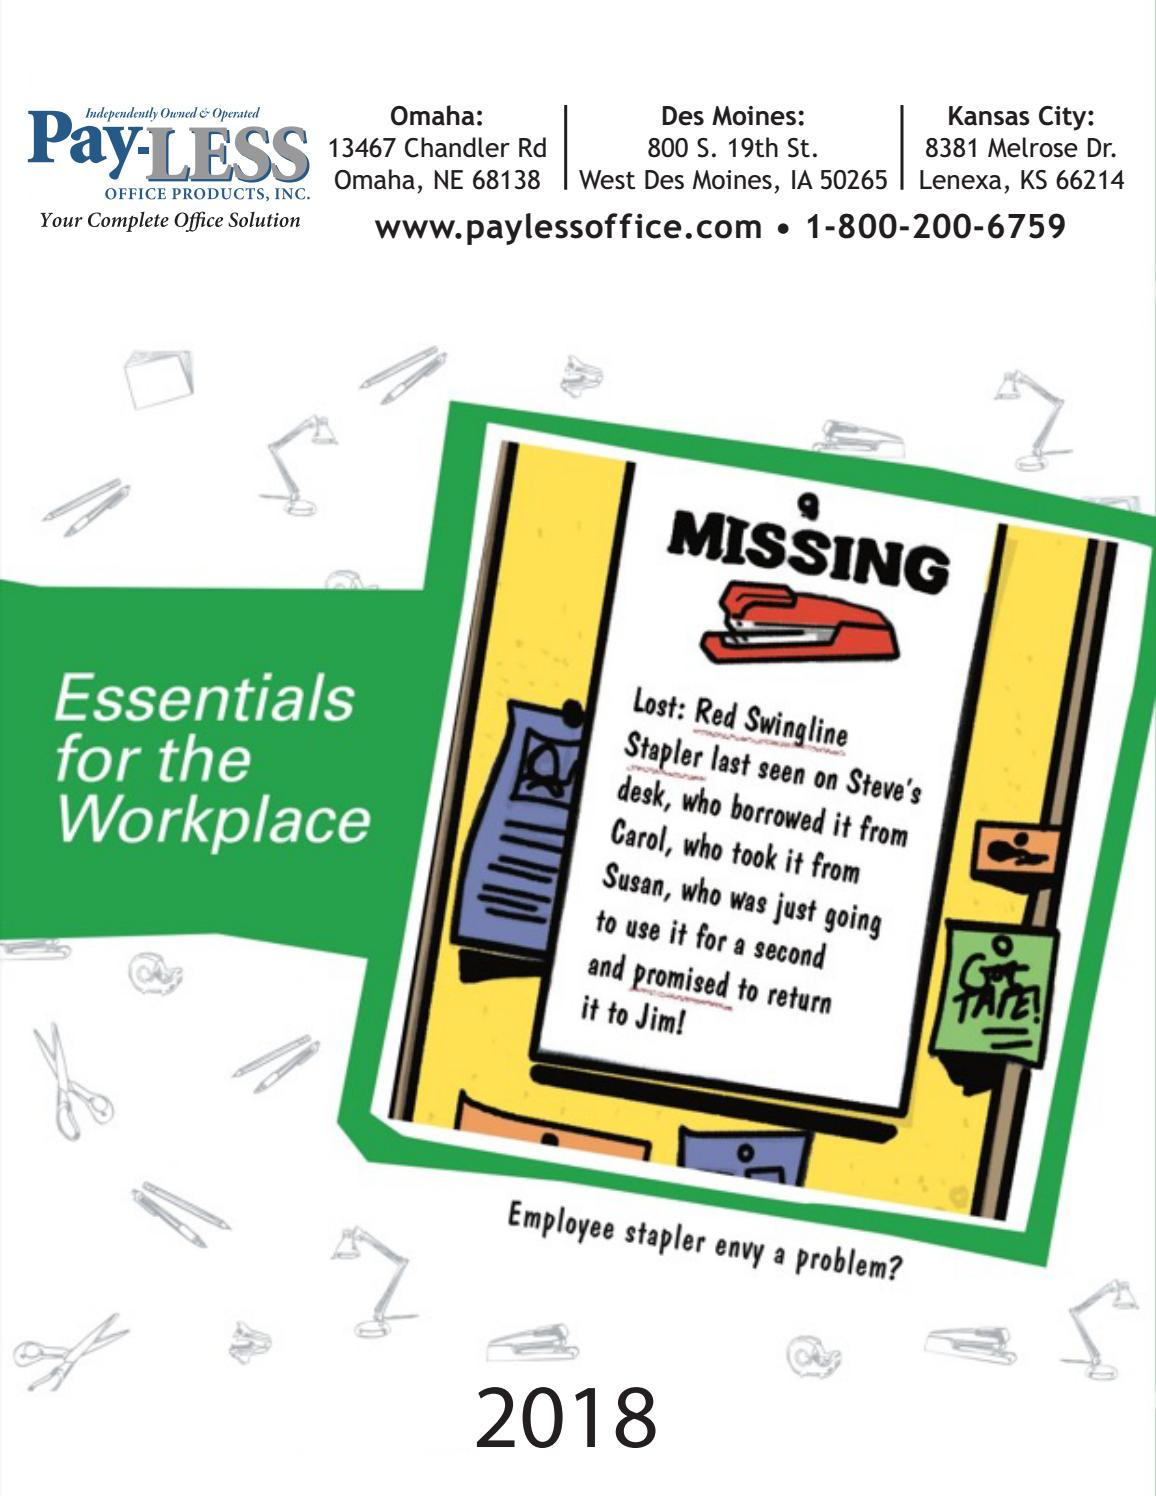 2018 Essentials for the Workplace by Pay-LESS Office Products - issuu